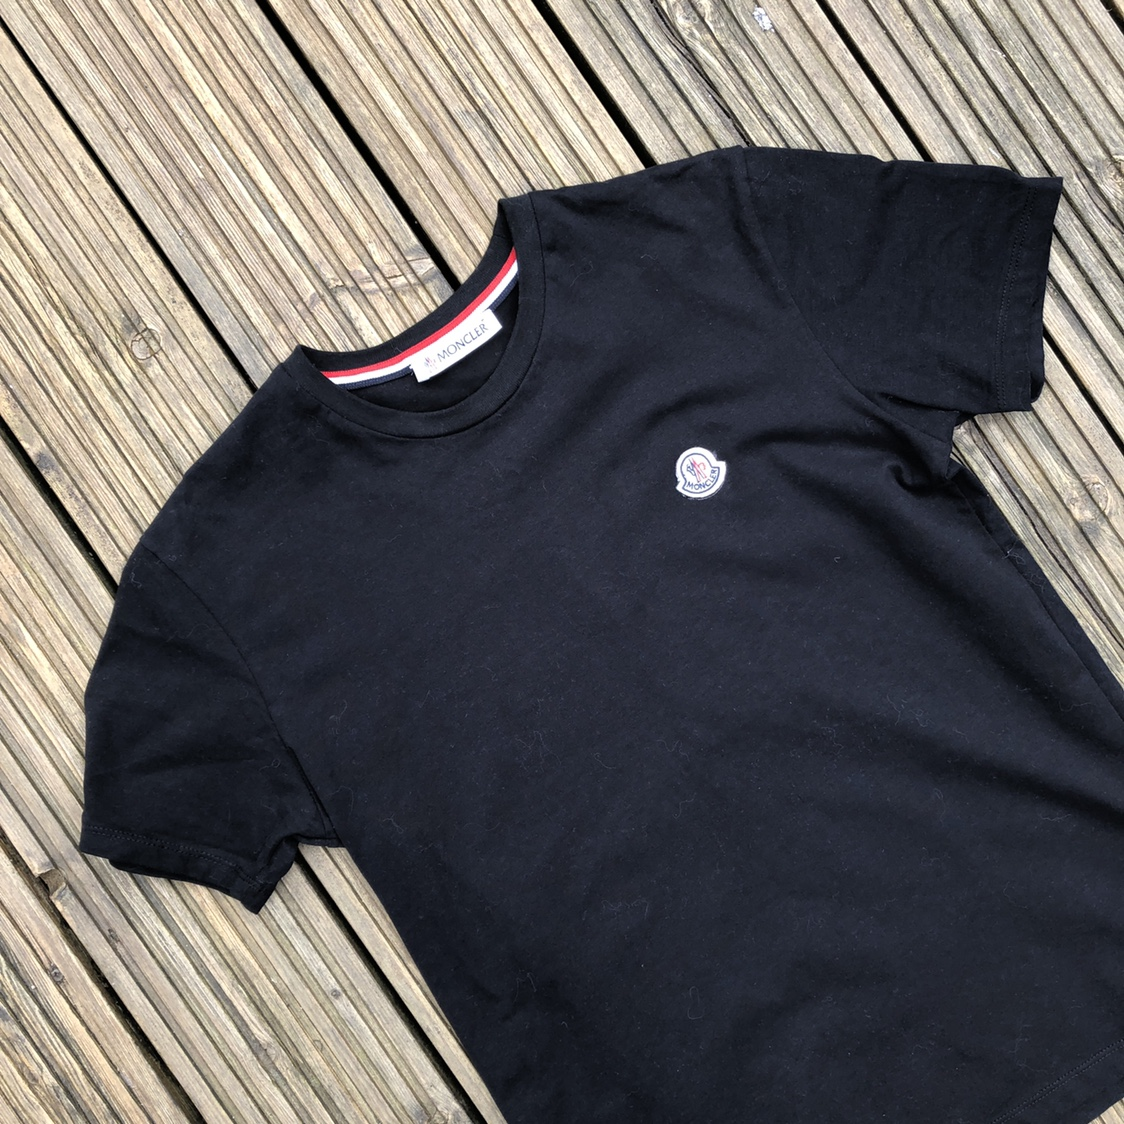 7c11444e4 Moncler T-shirt plain black with small embroidered... - Depop